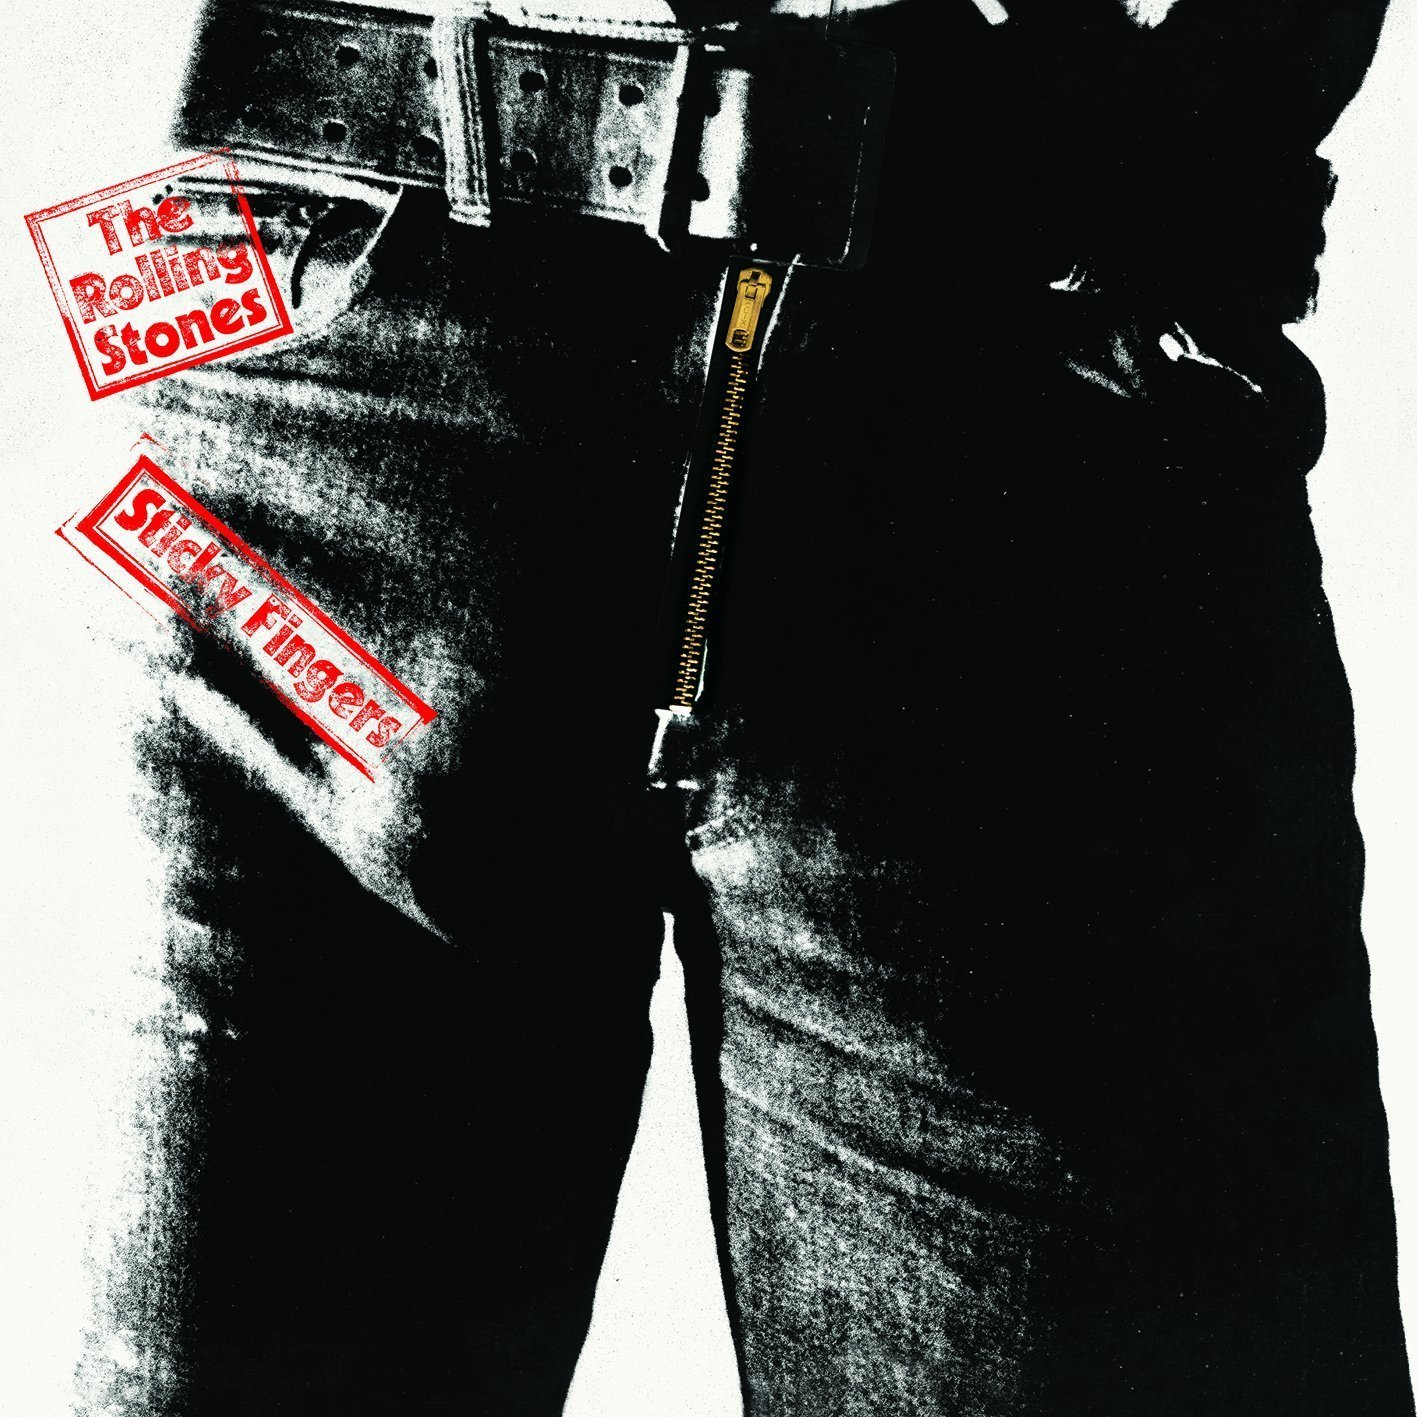 The Rolling Stones – Sticky Fingers – album cover